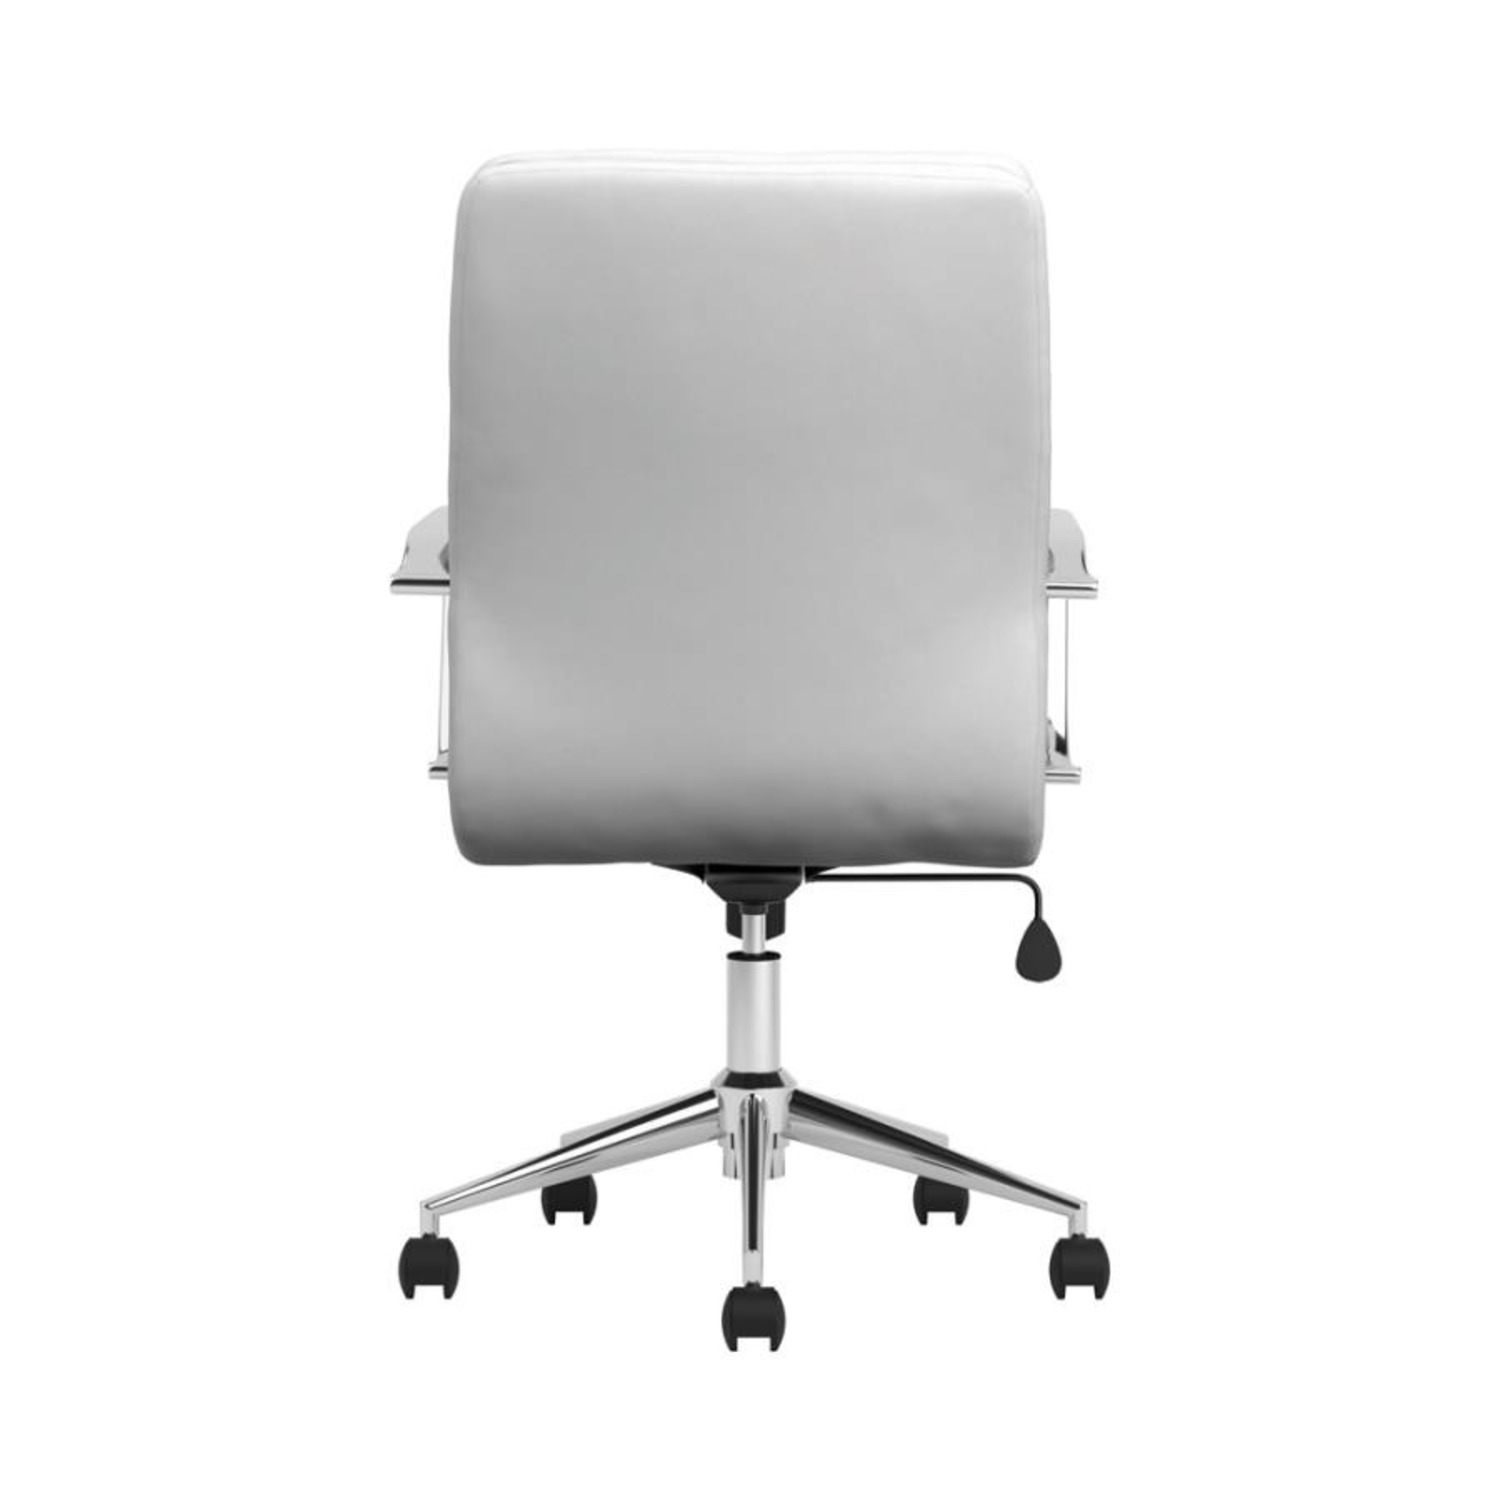 Office Chair In White Leatherette & Chrome Finish - image-4